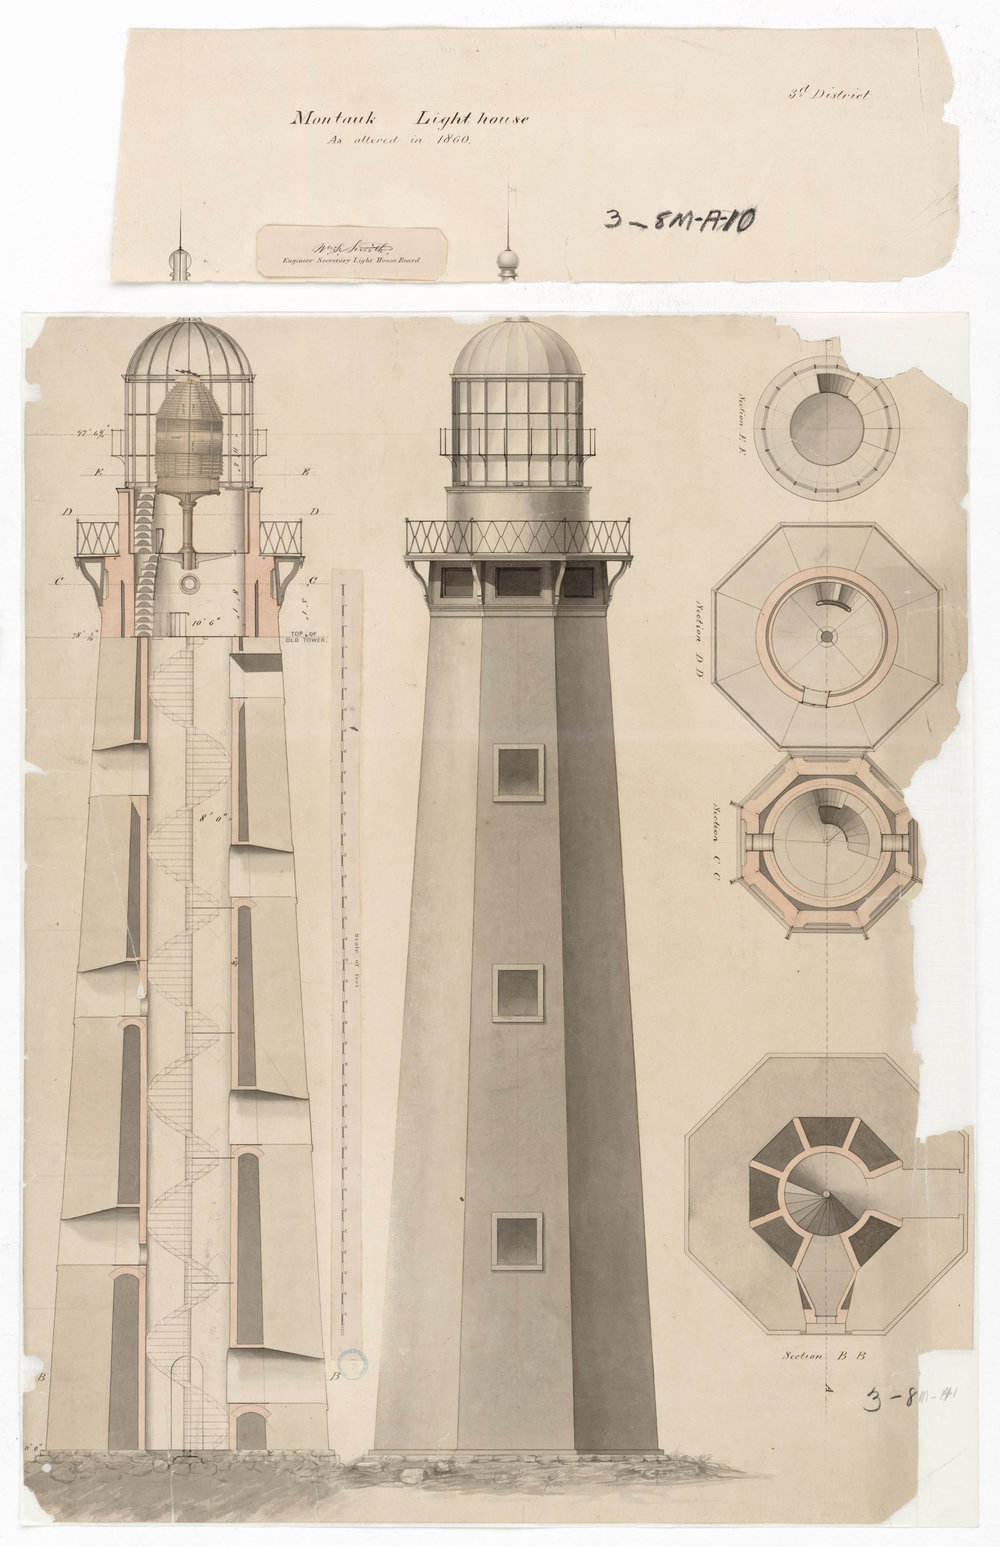 Original Site Plans for the Montauk Lighthouse